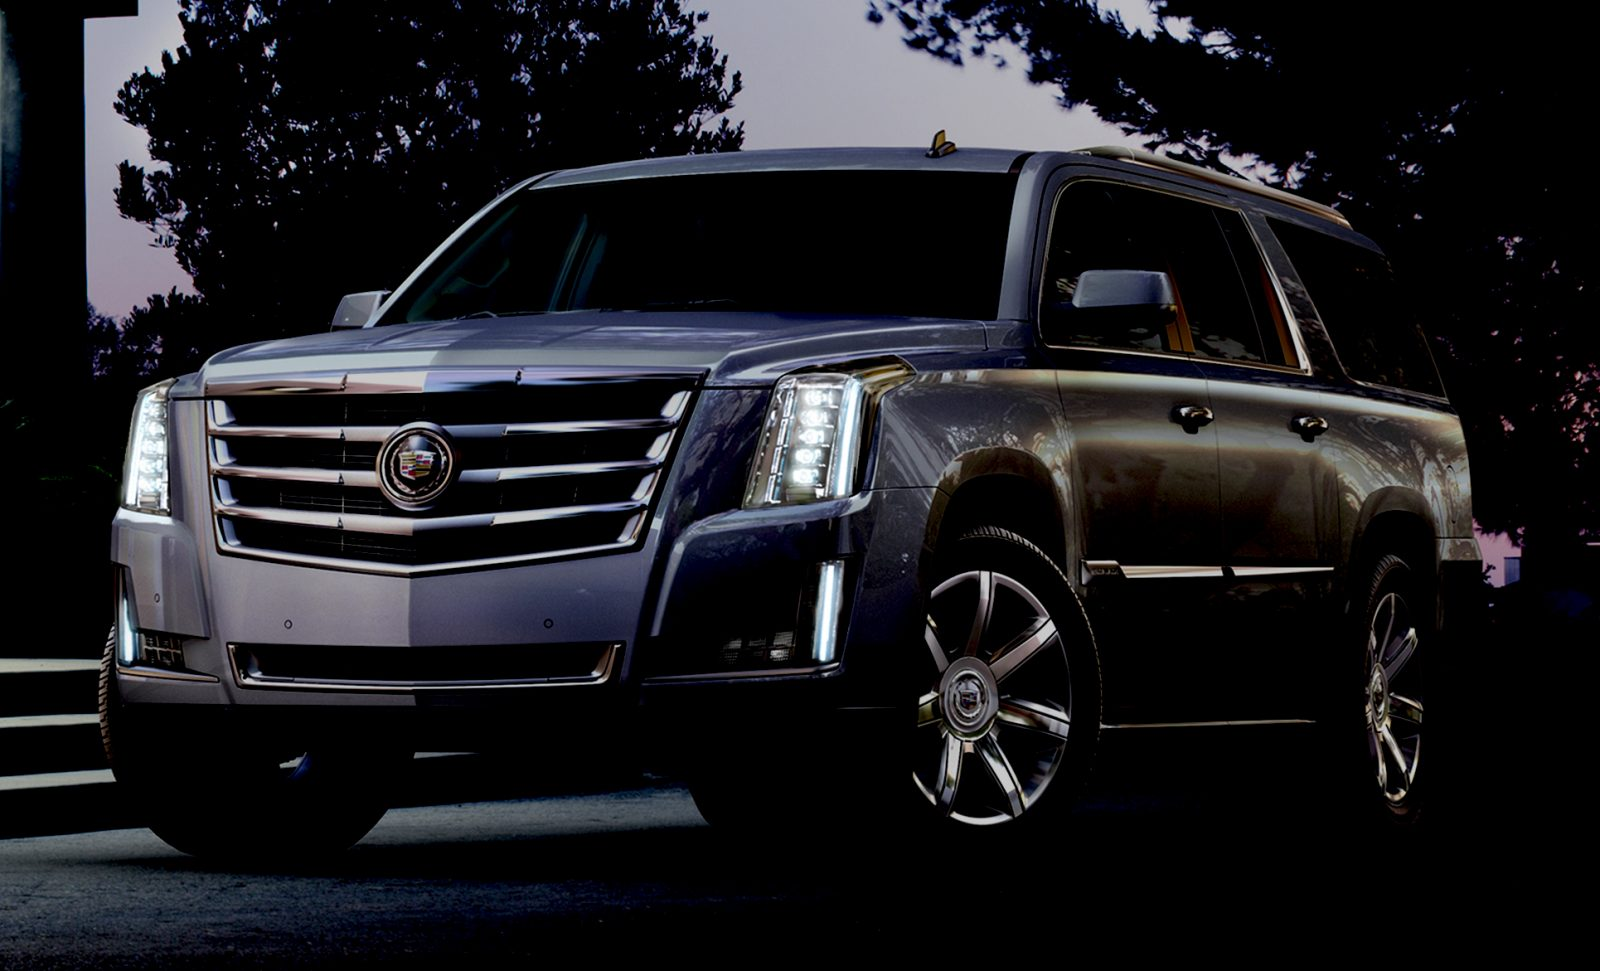 2015 Cadillac Escalade In-Depth Review + Mega Galleries26